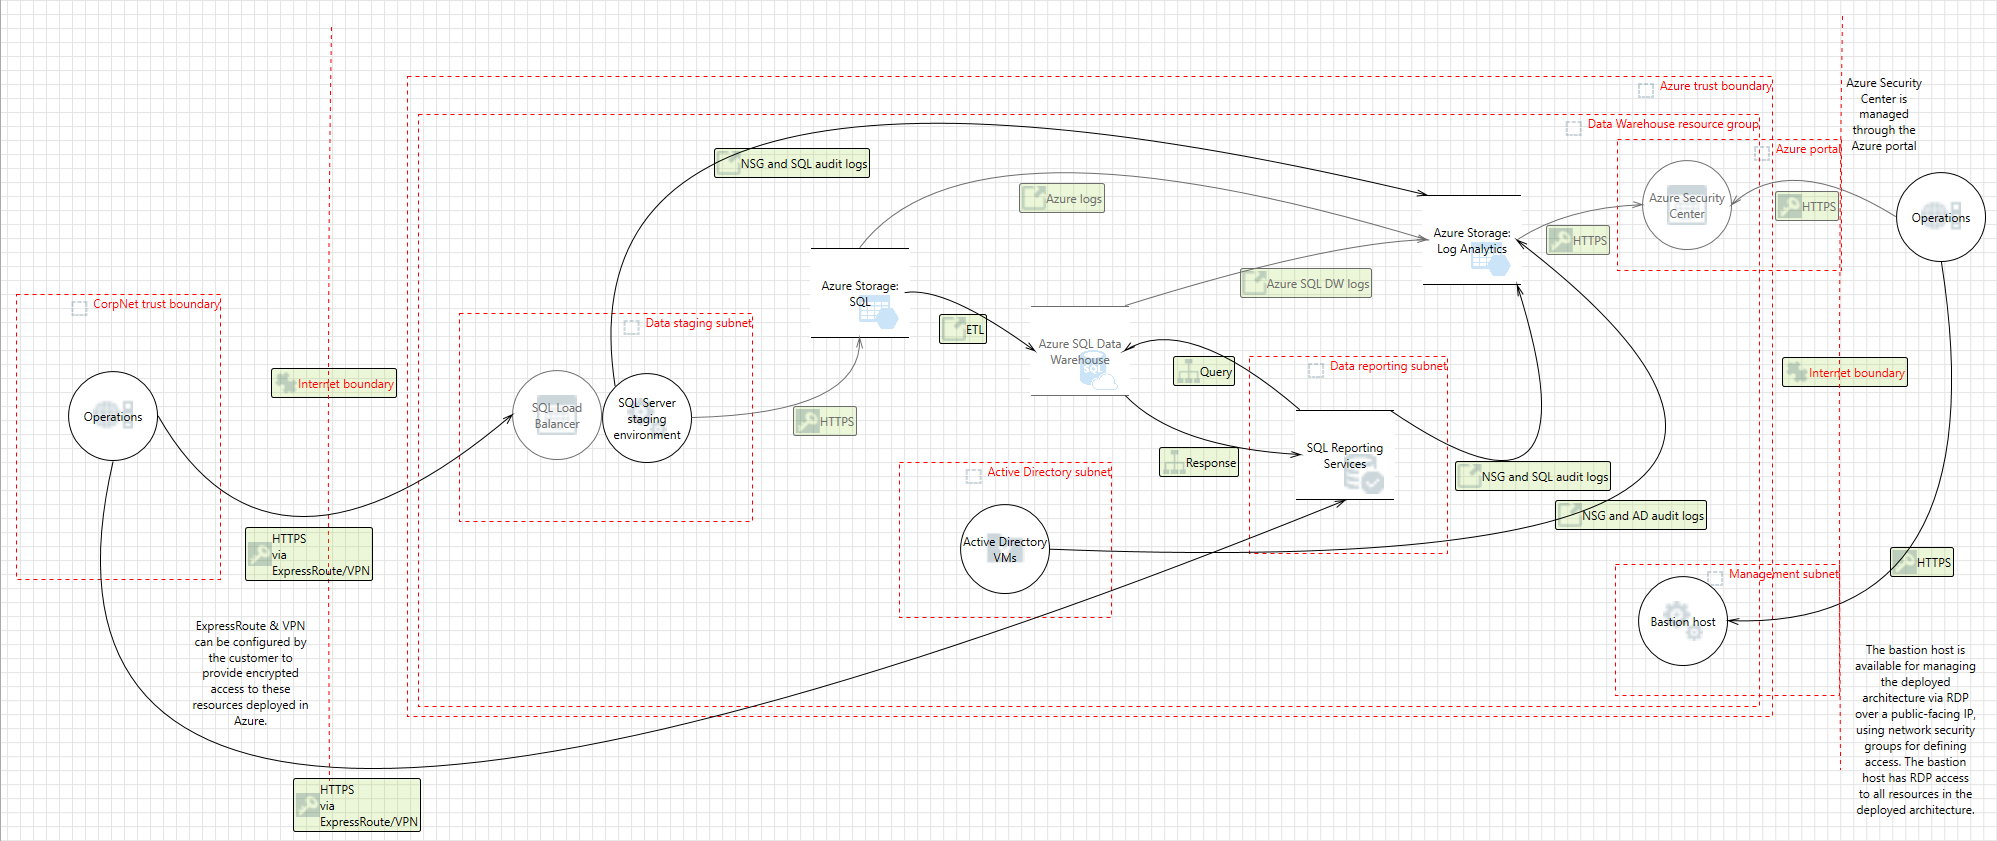 Azure Security And Compliance Blueprint Data Warehouse For Uk Nhs Sync Engineering Schematics Threat Model